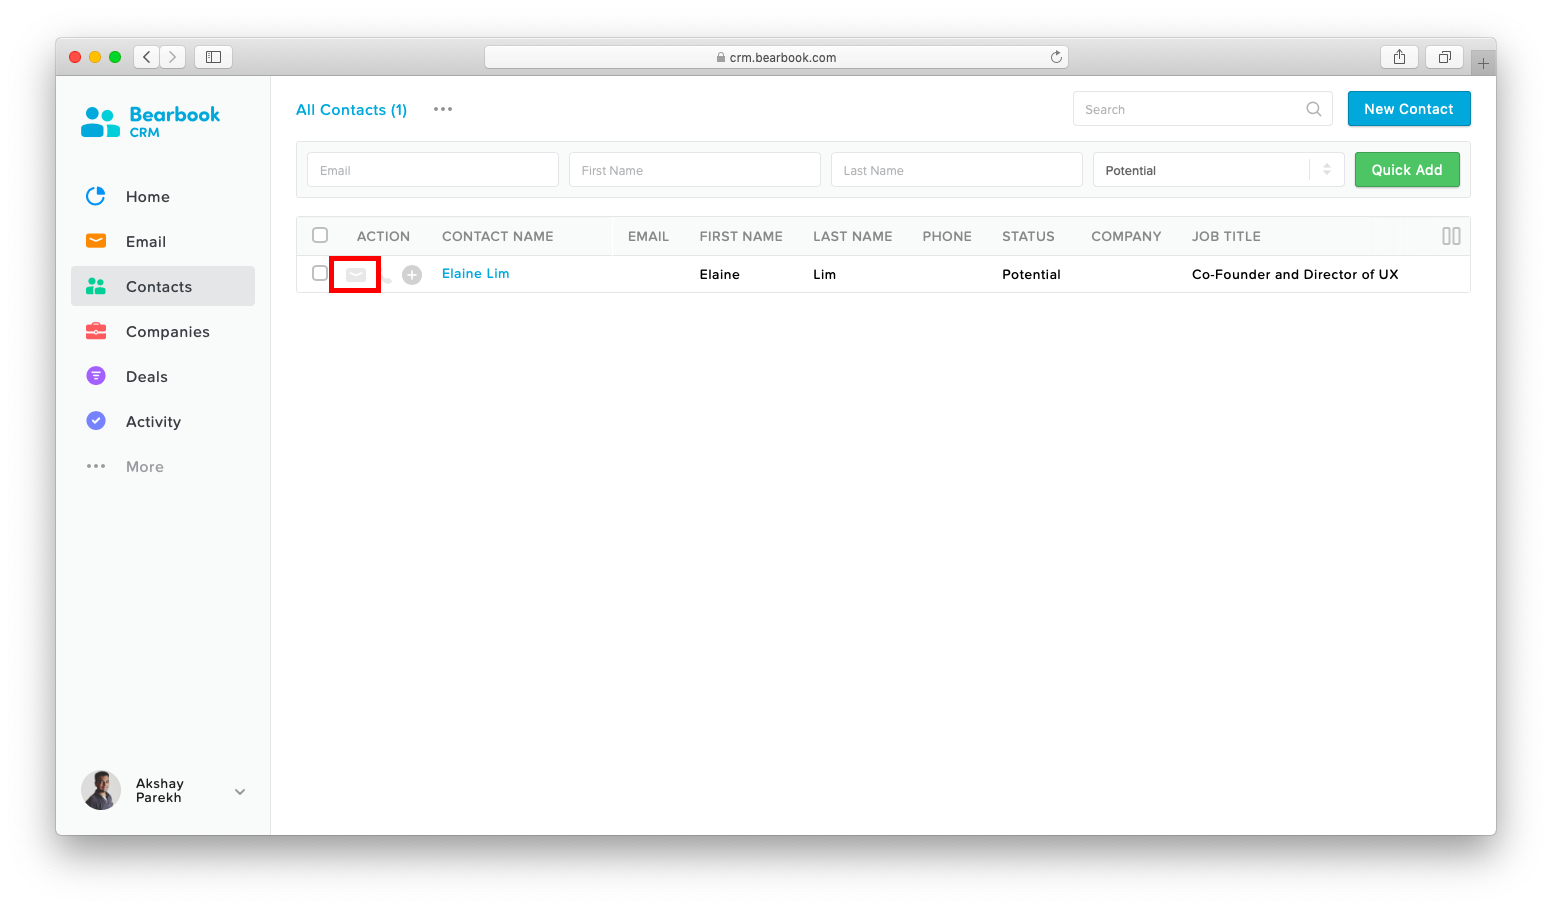 Built-in Email Bearbook CRM